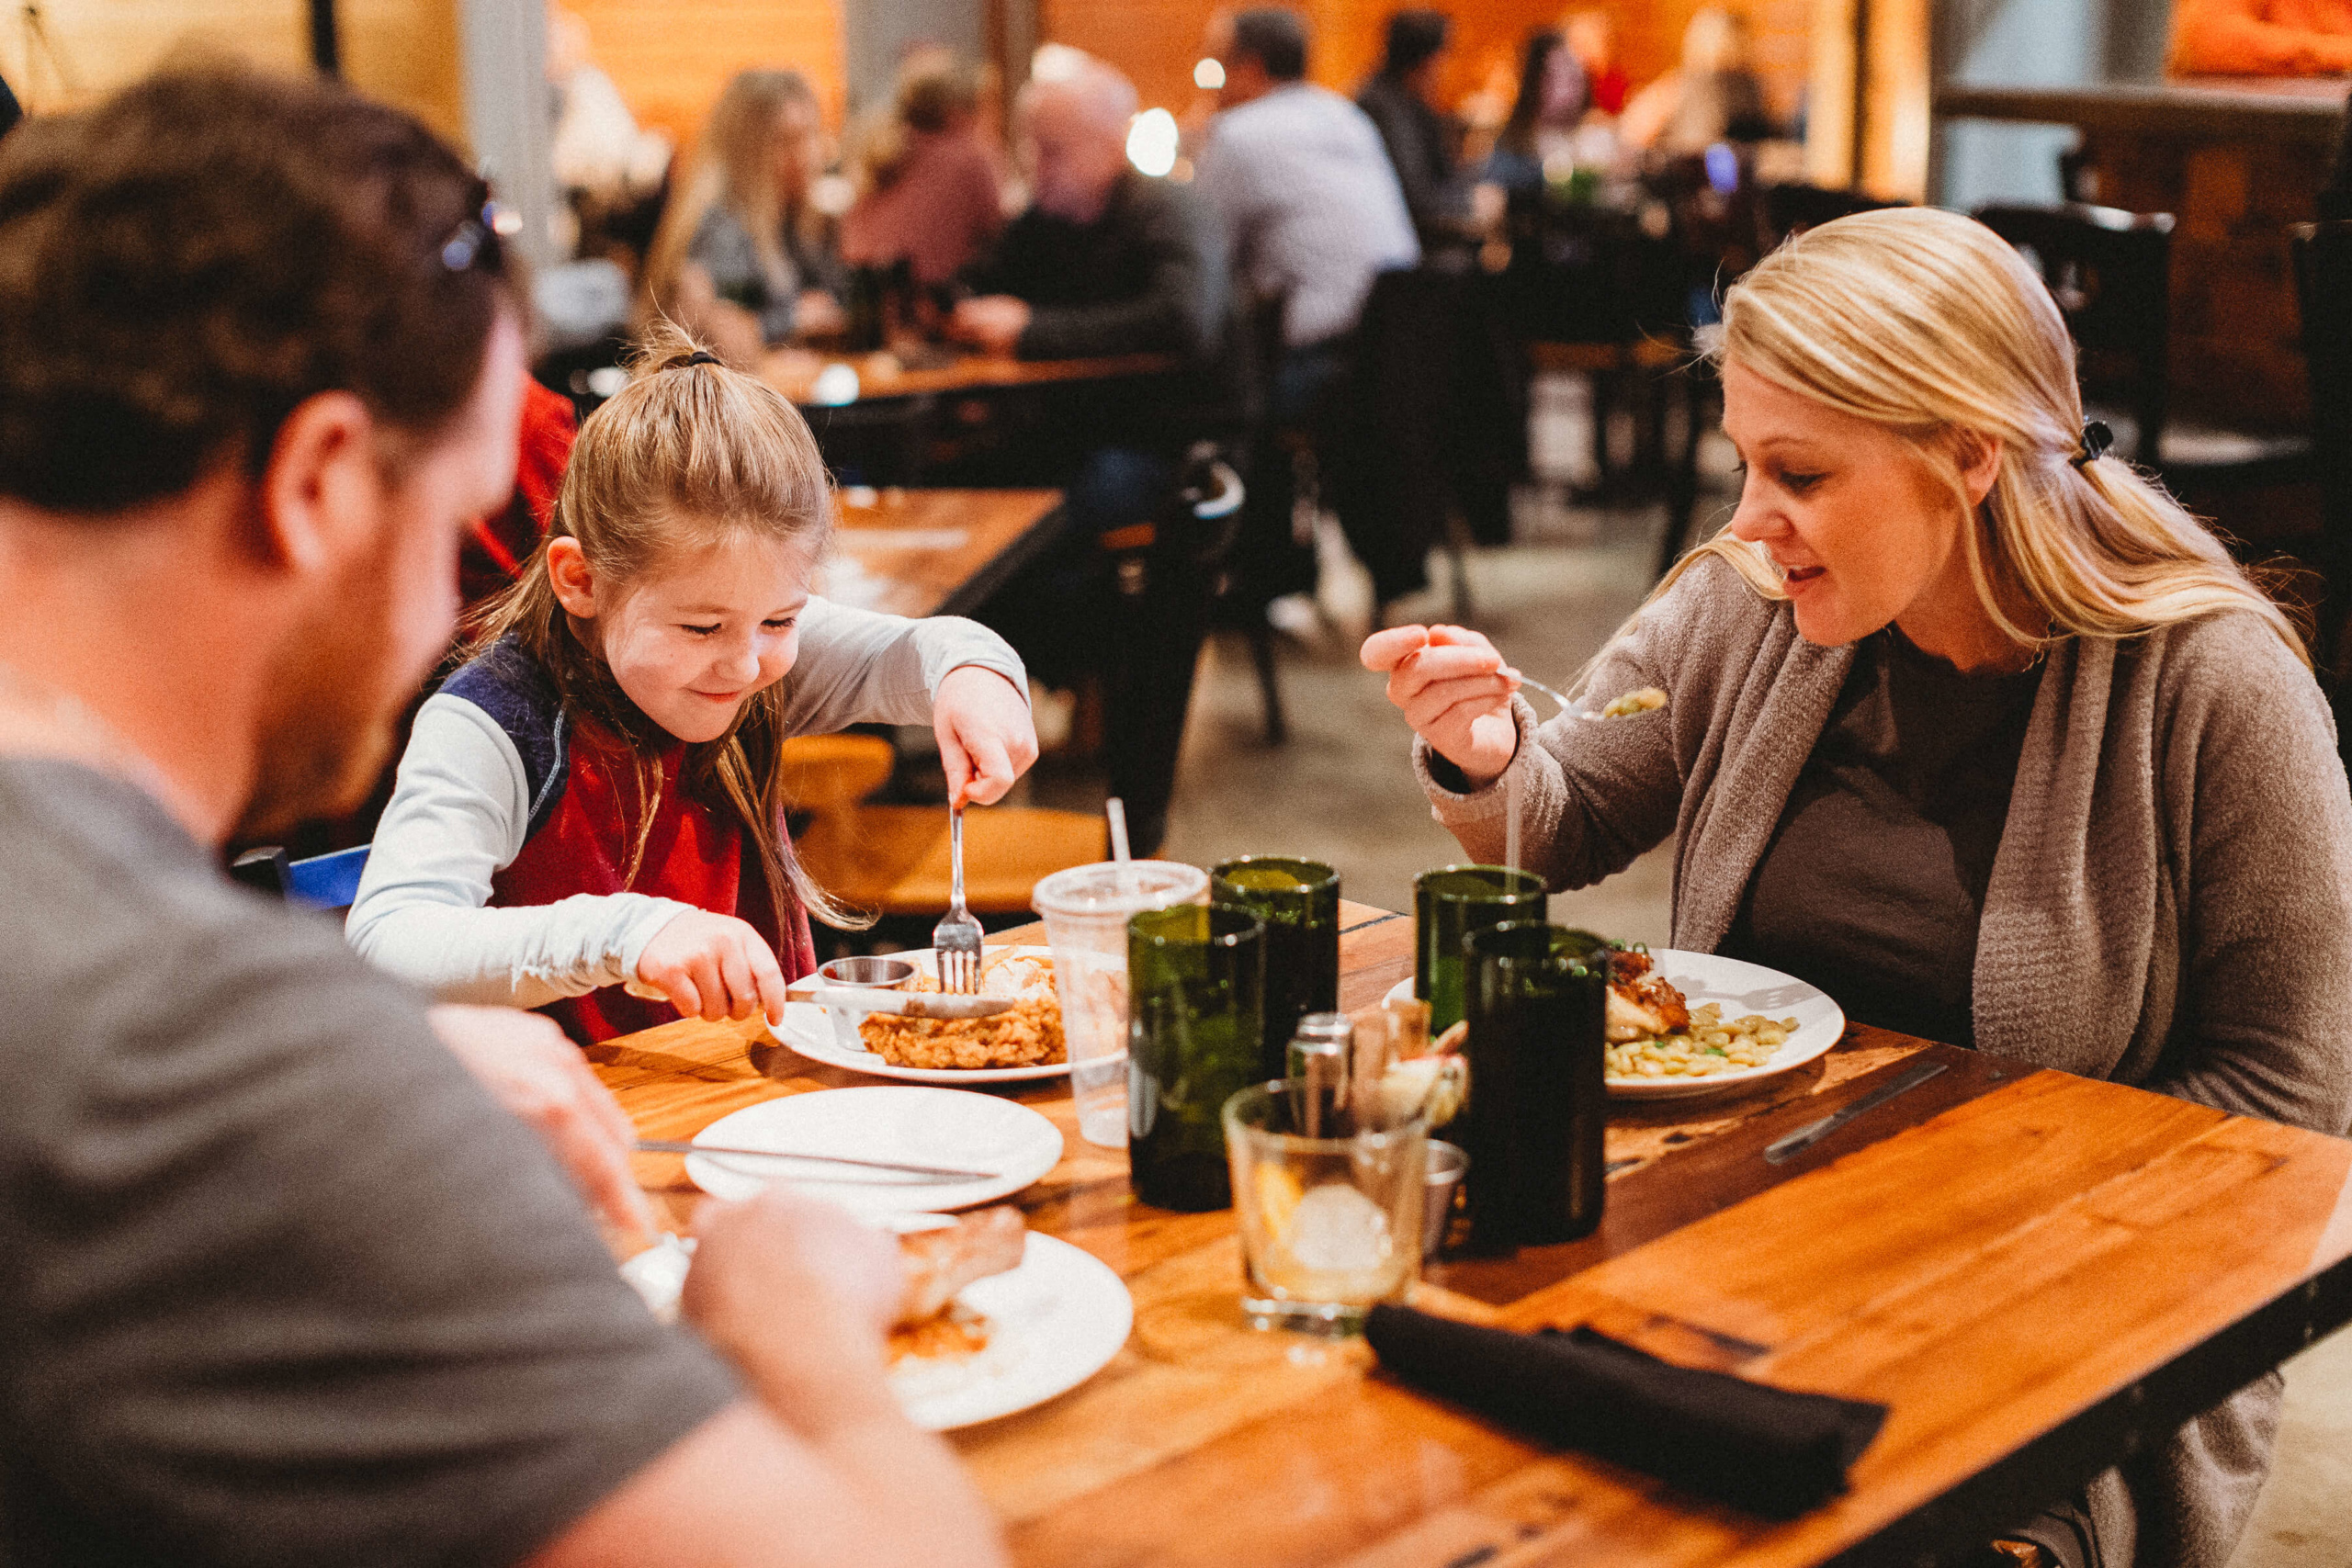 Little girl eating a beautiful dish while surrounded by her smiling parents, also enjoying their meals